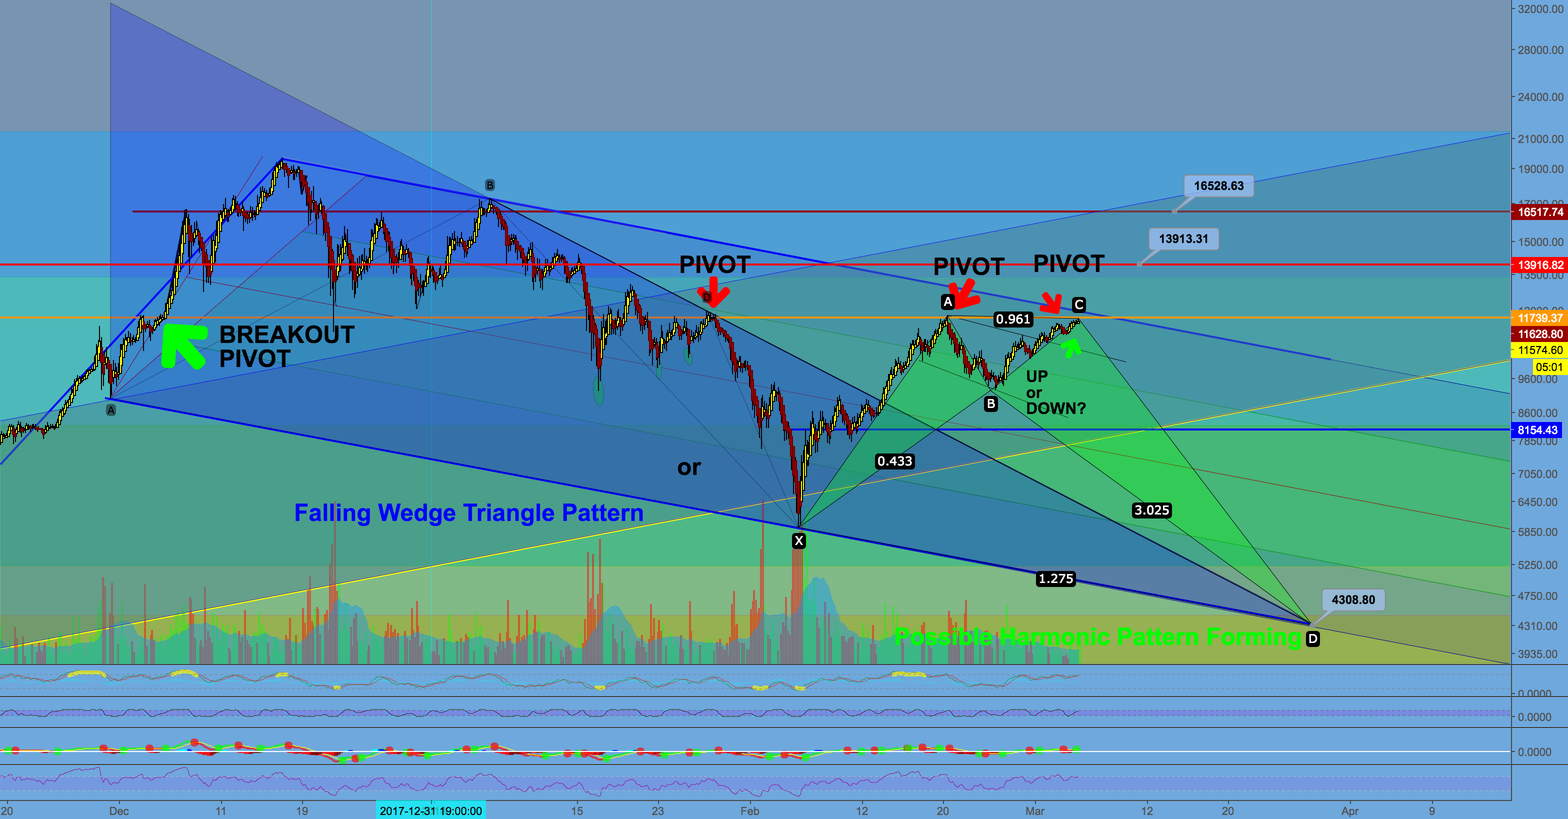 Bitcoin and the CrytoMarkets. Pivot Points and Market Direction